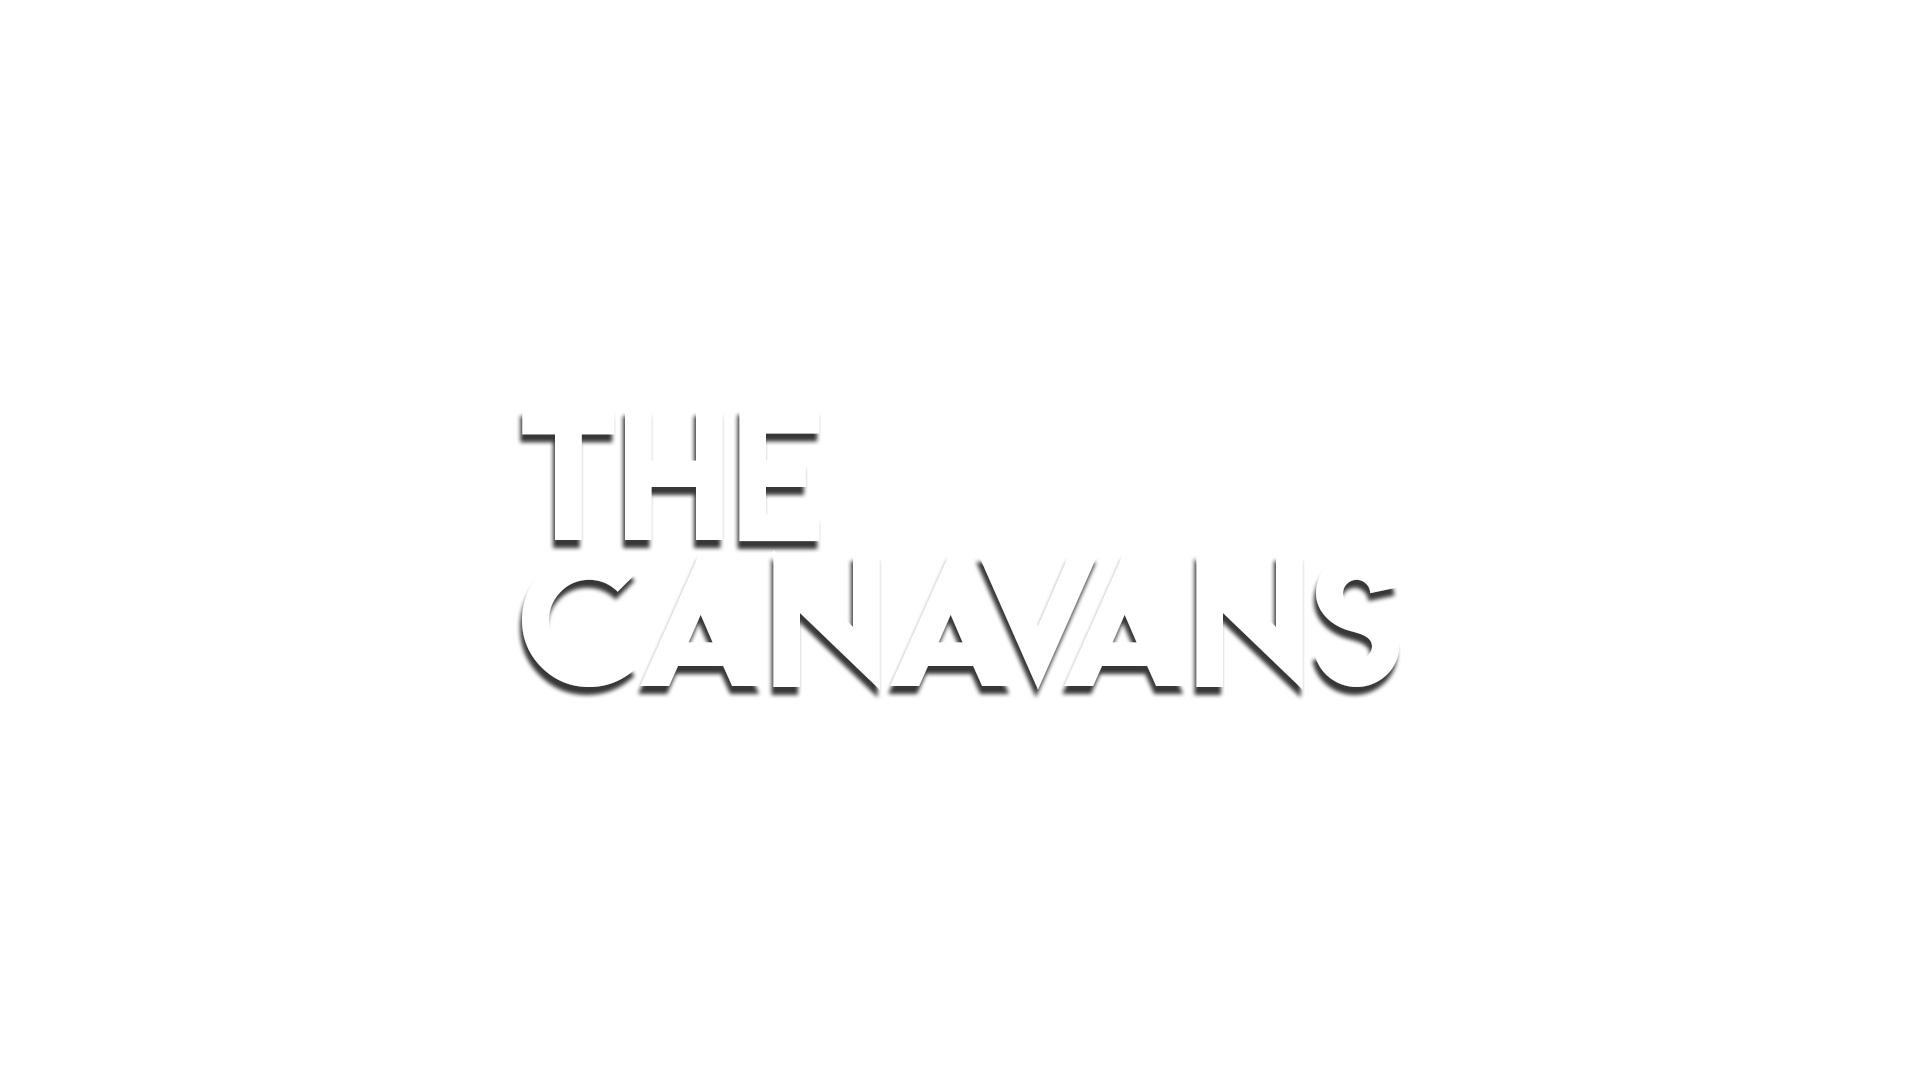 theCanavans words